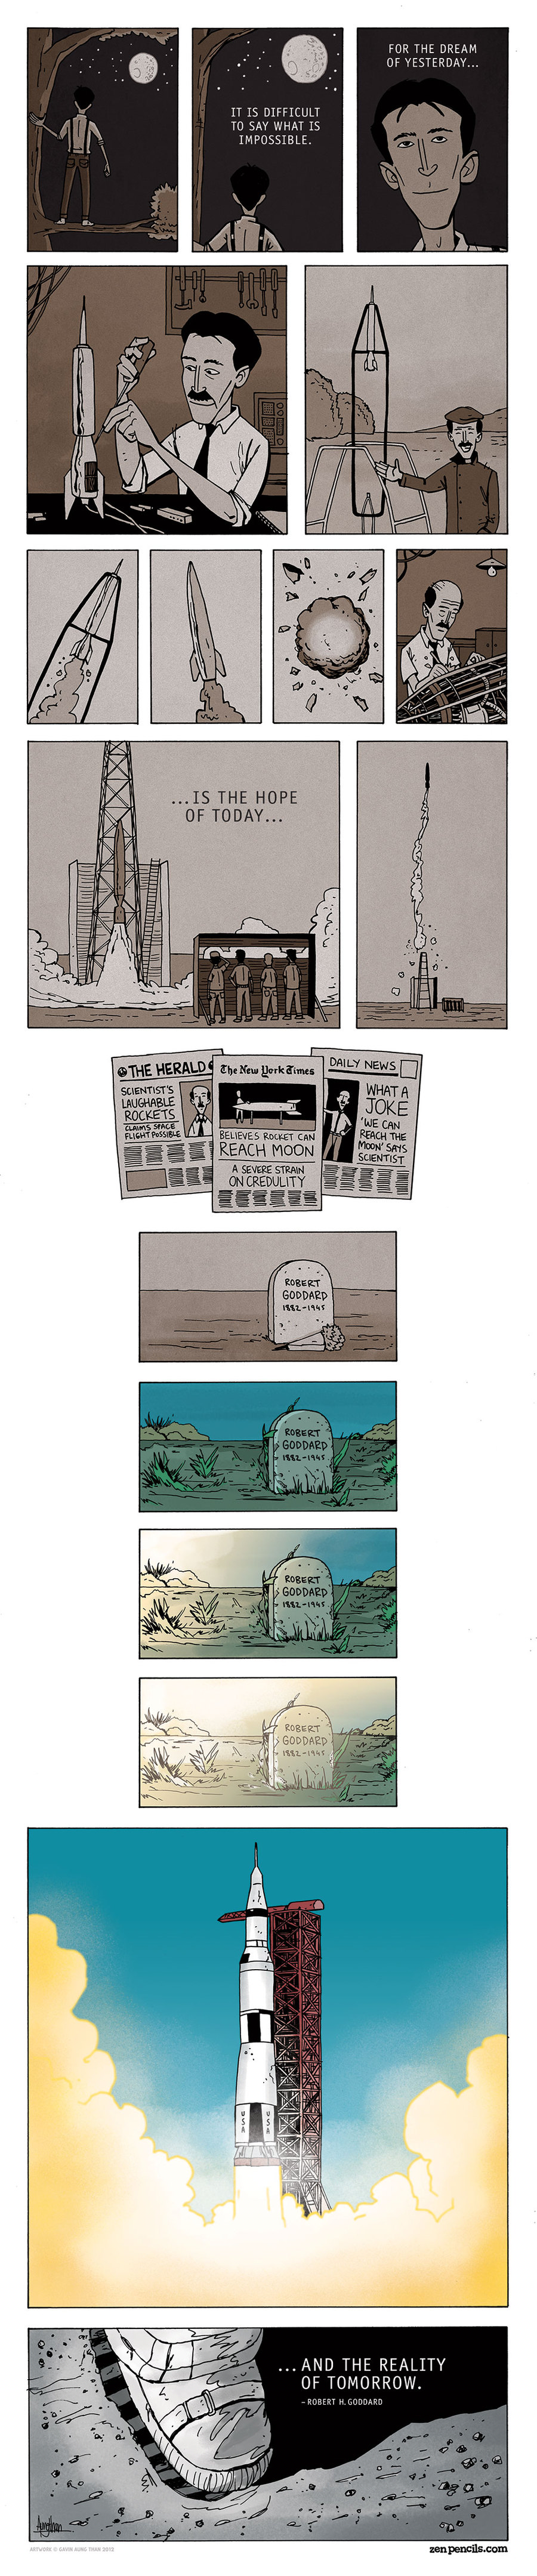 Zen Pencils for Nov 4, 2013 Comic Strip